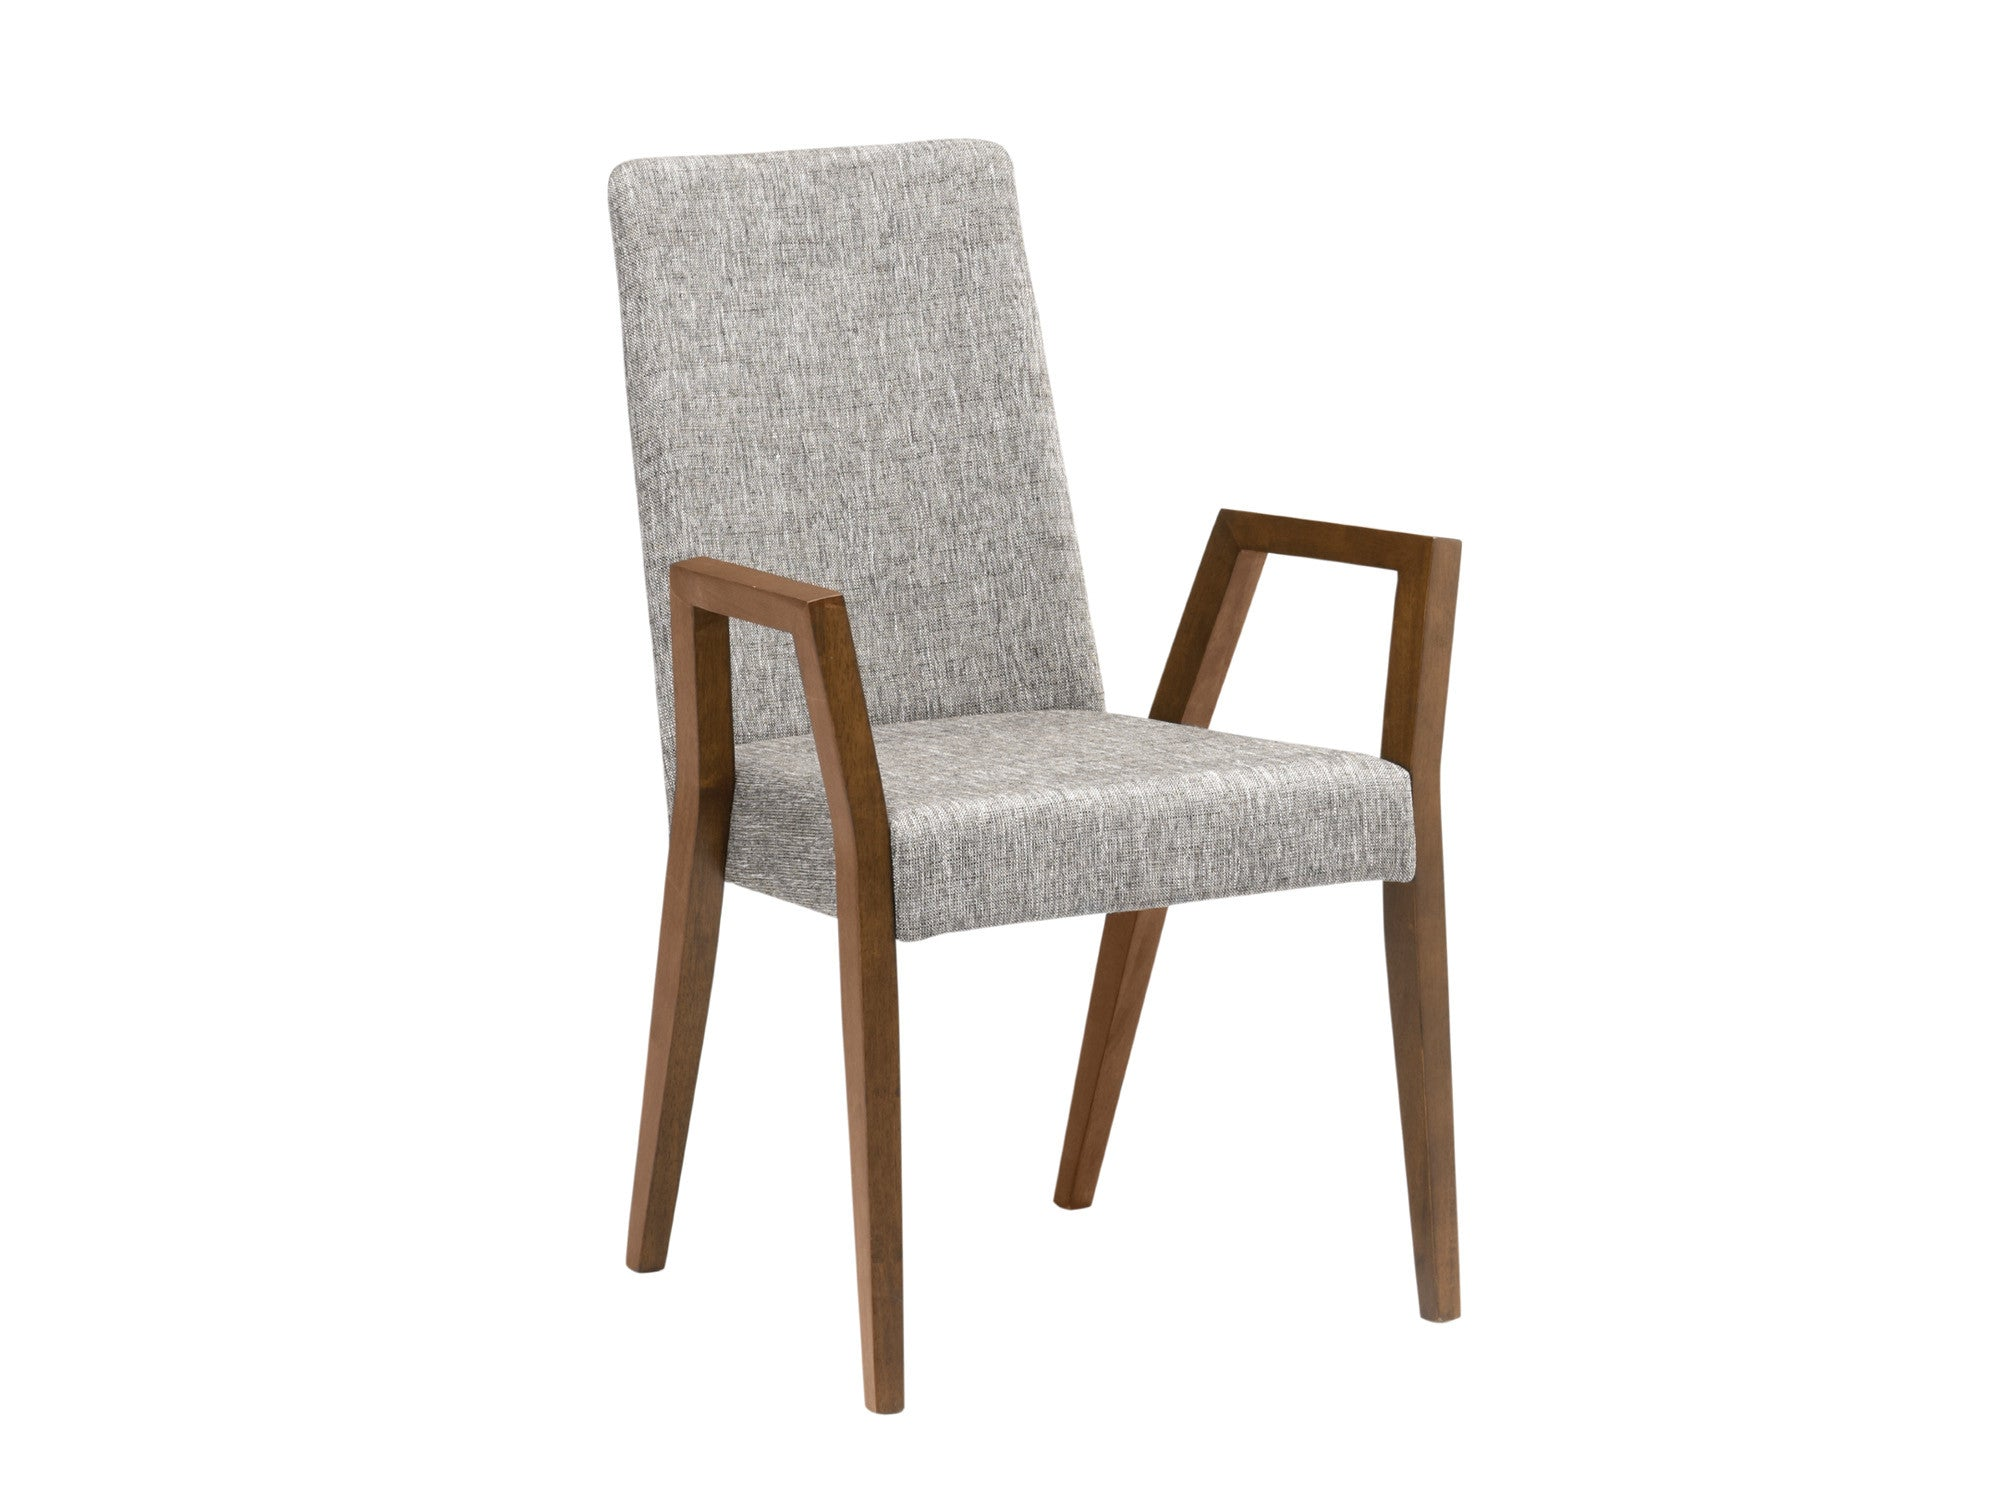 Newell furniture melvie armchair coral meubles for Meubles newell montreal